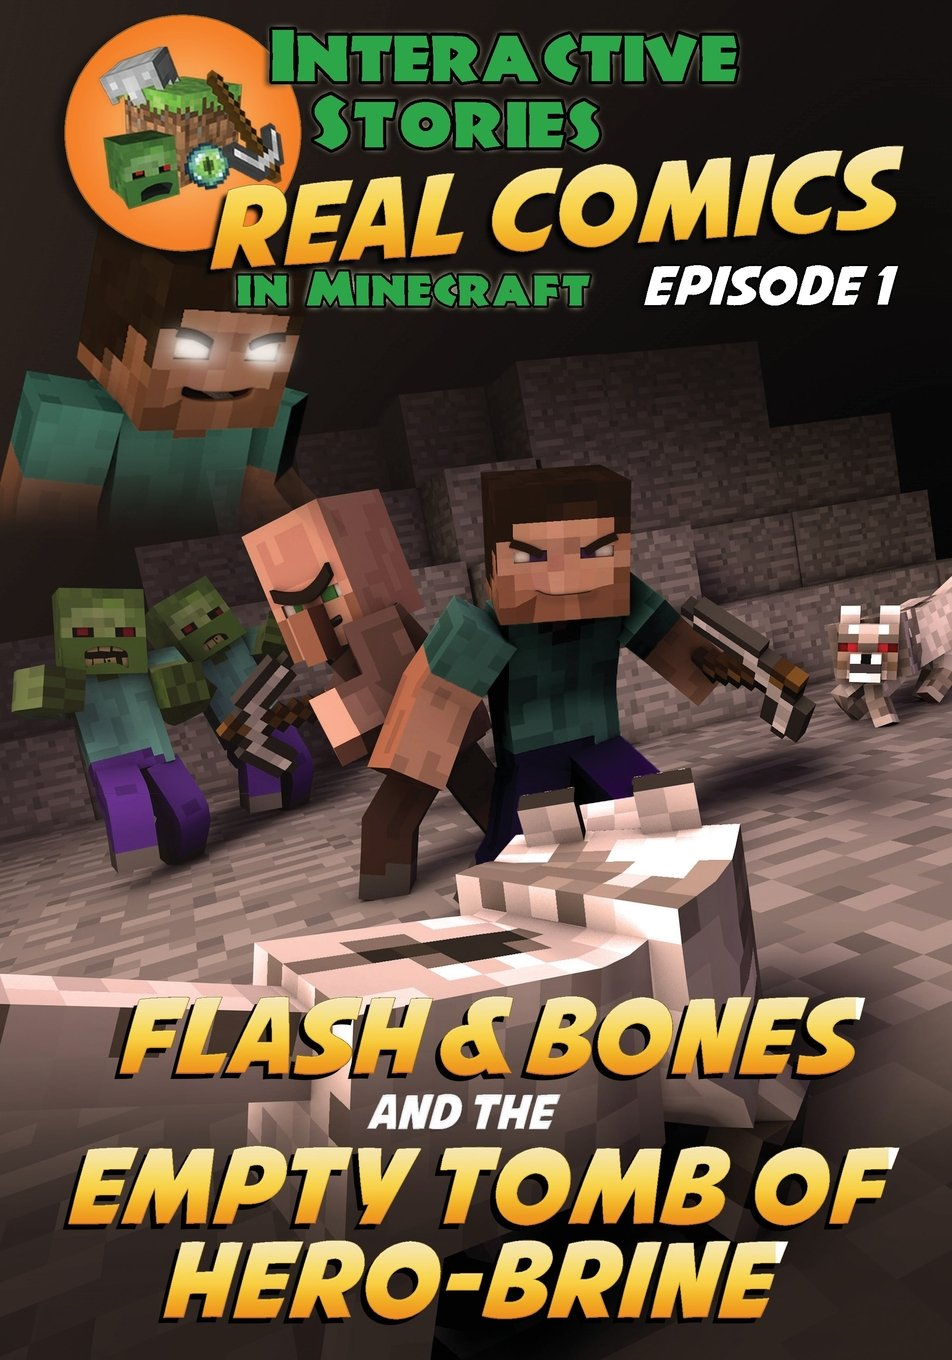 Amazon Com Flash And Bones And The Empty Tomb Of Herobrine Real